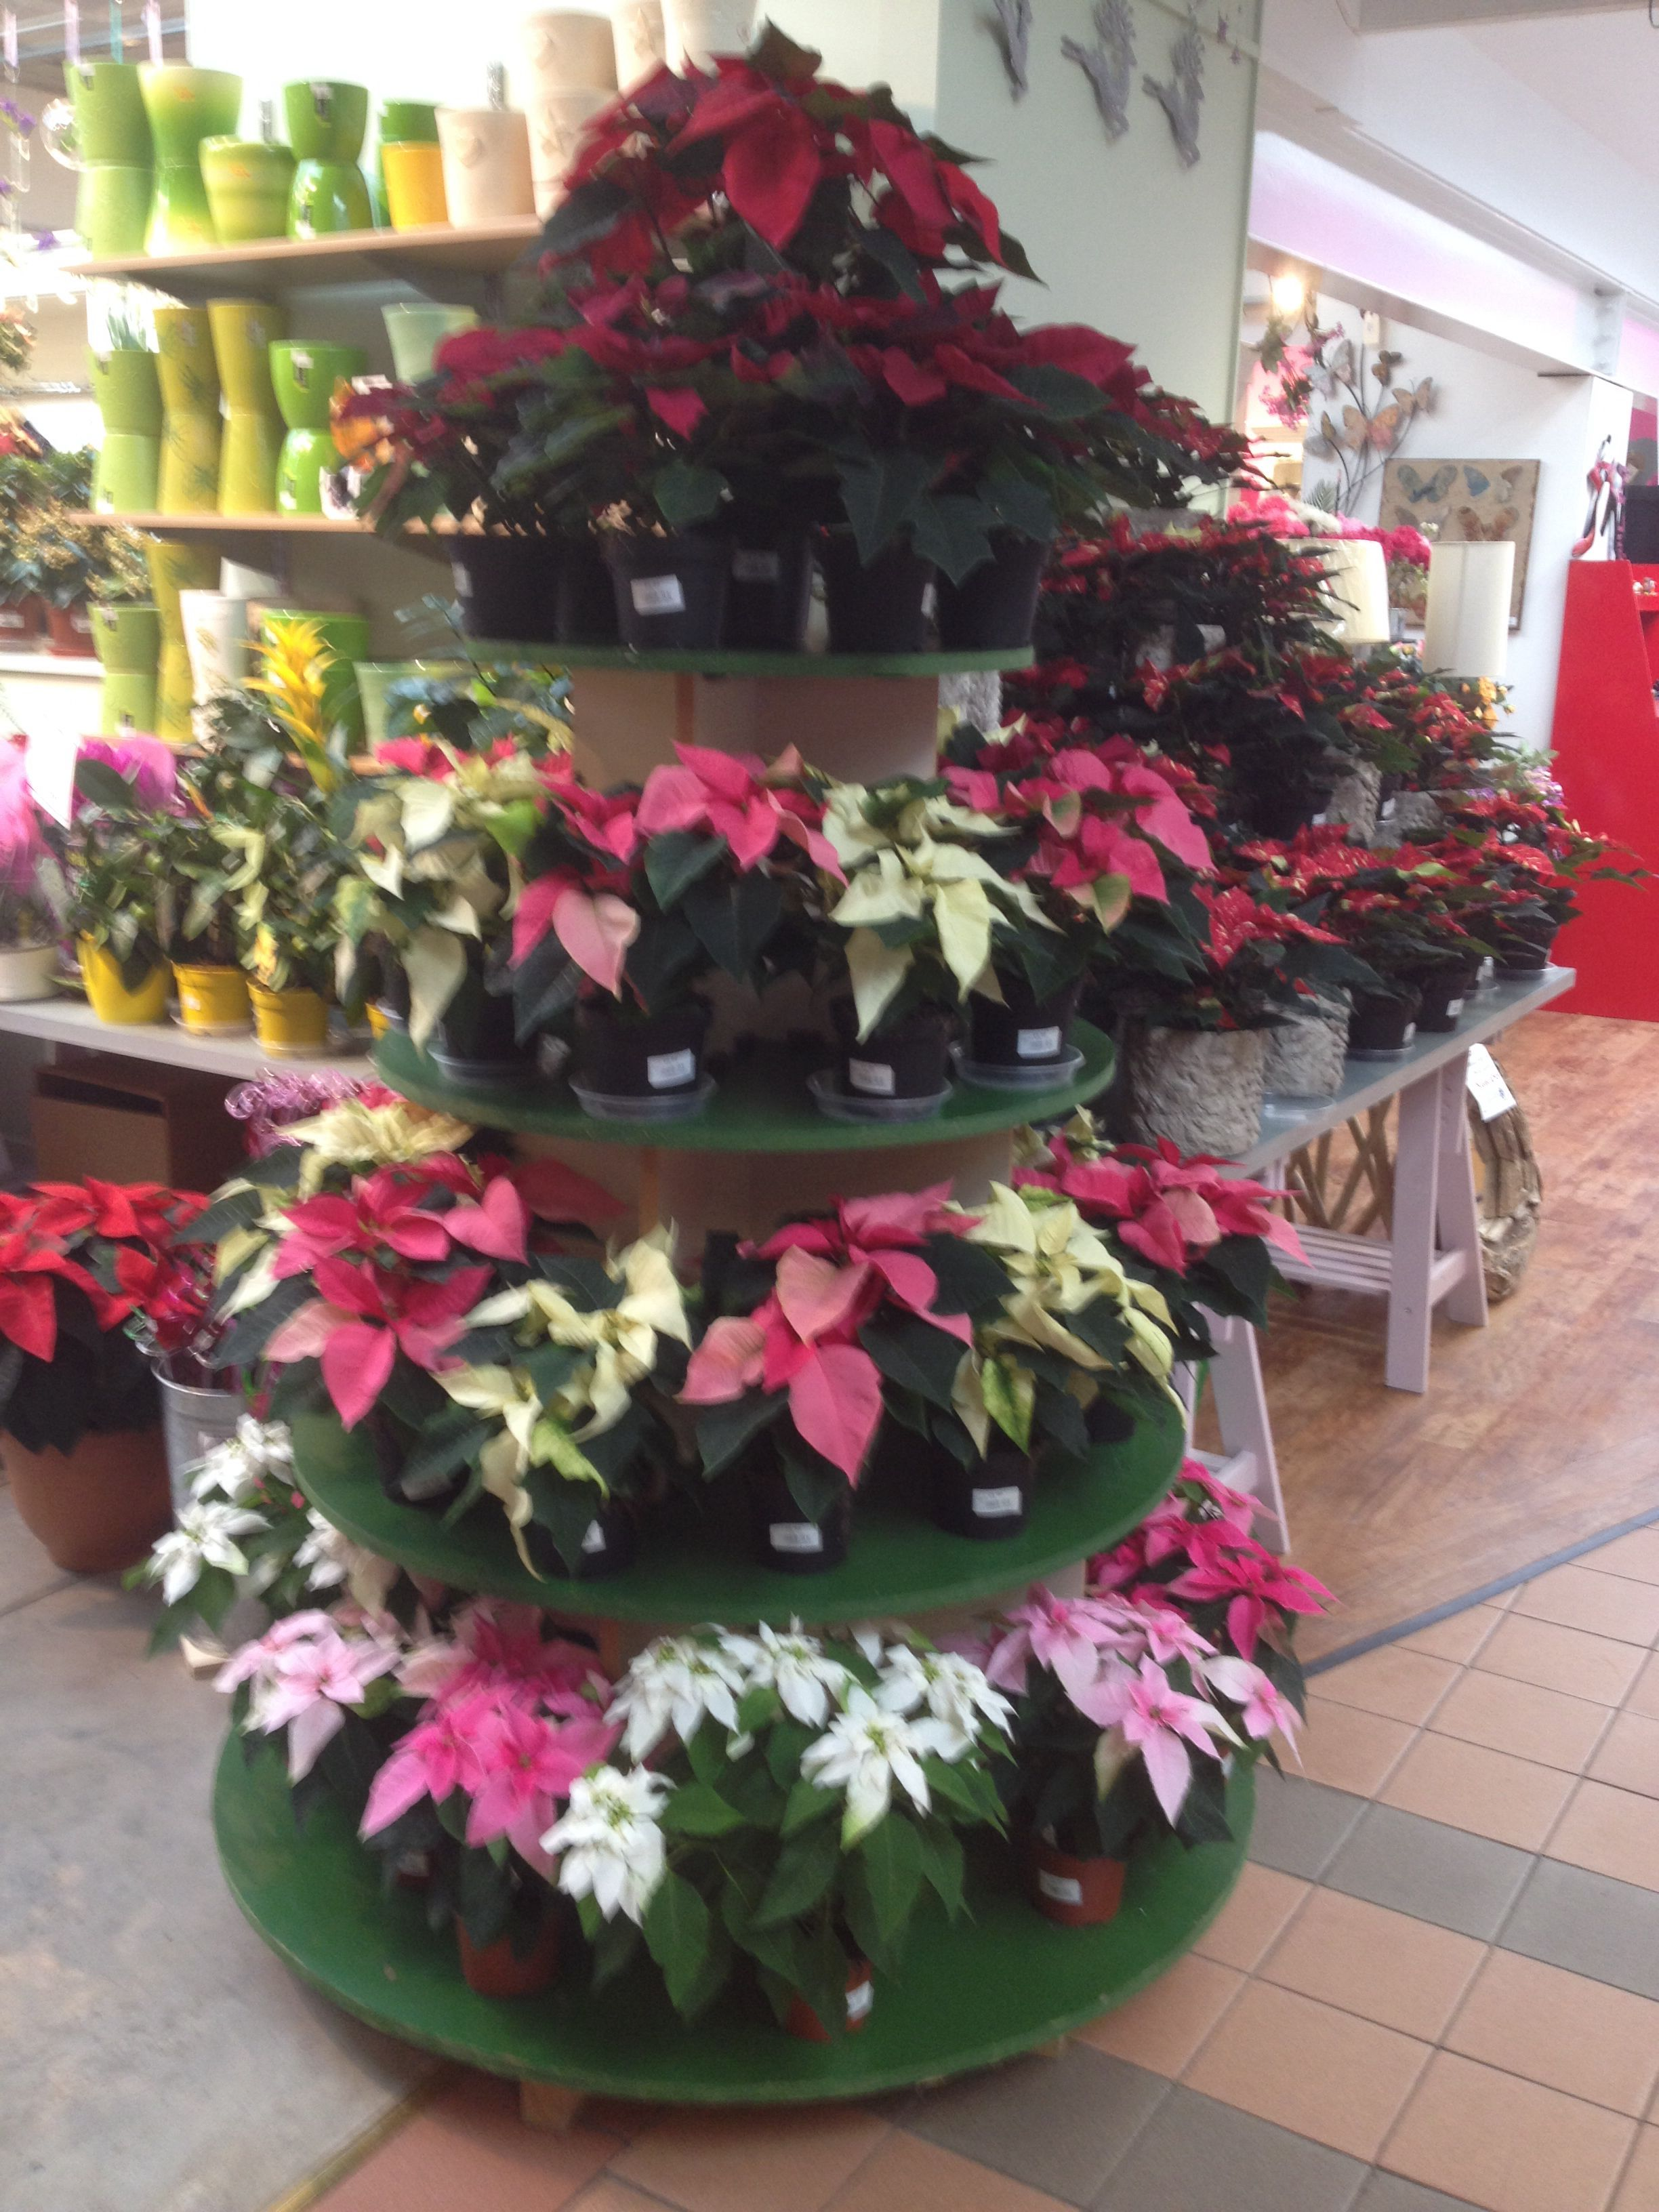 Tiered Poinsettia display Garden center displays, Garden